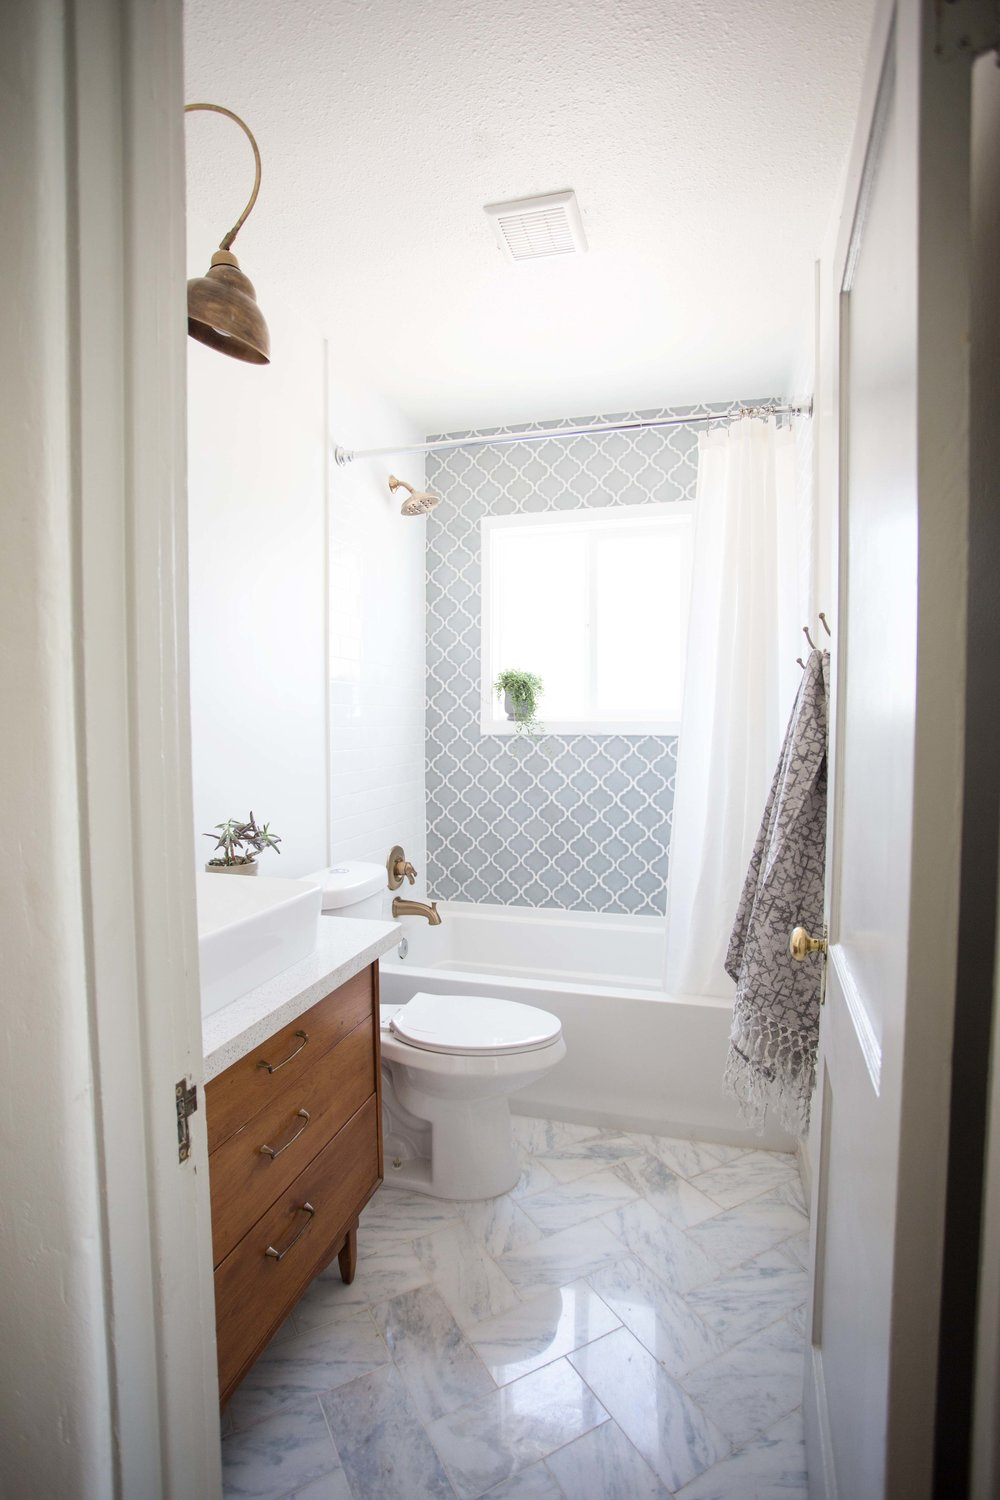 Spanish style bathroom with mid century modern accents